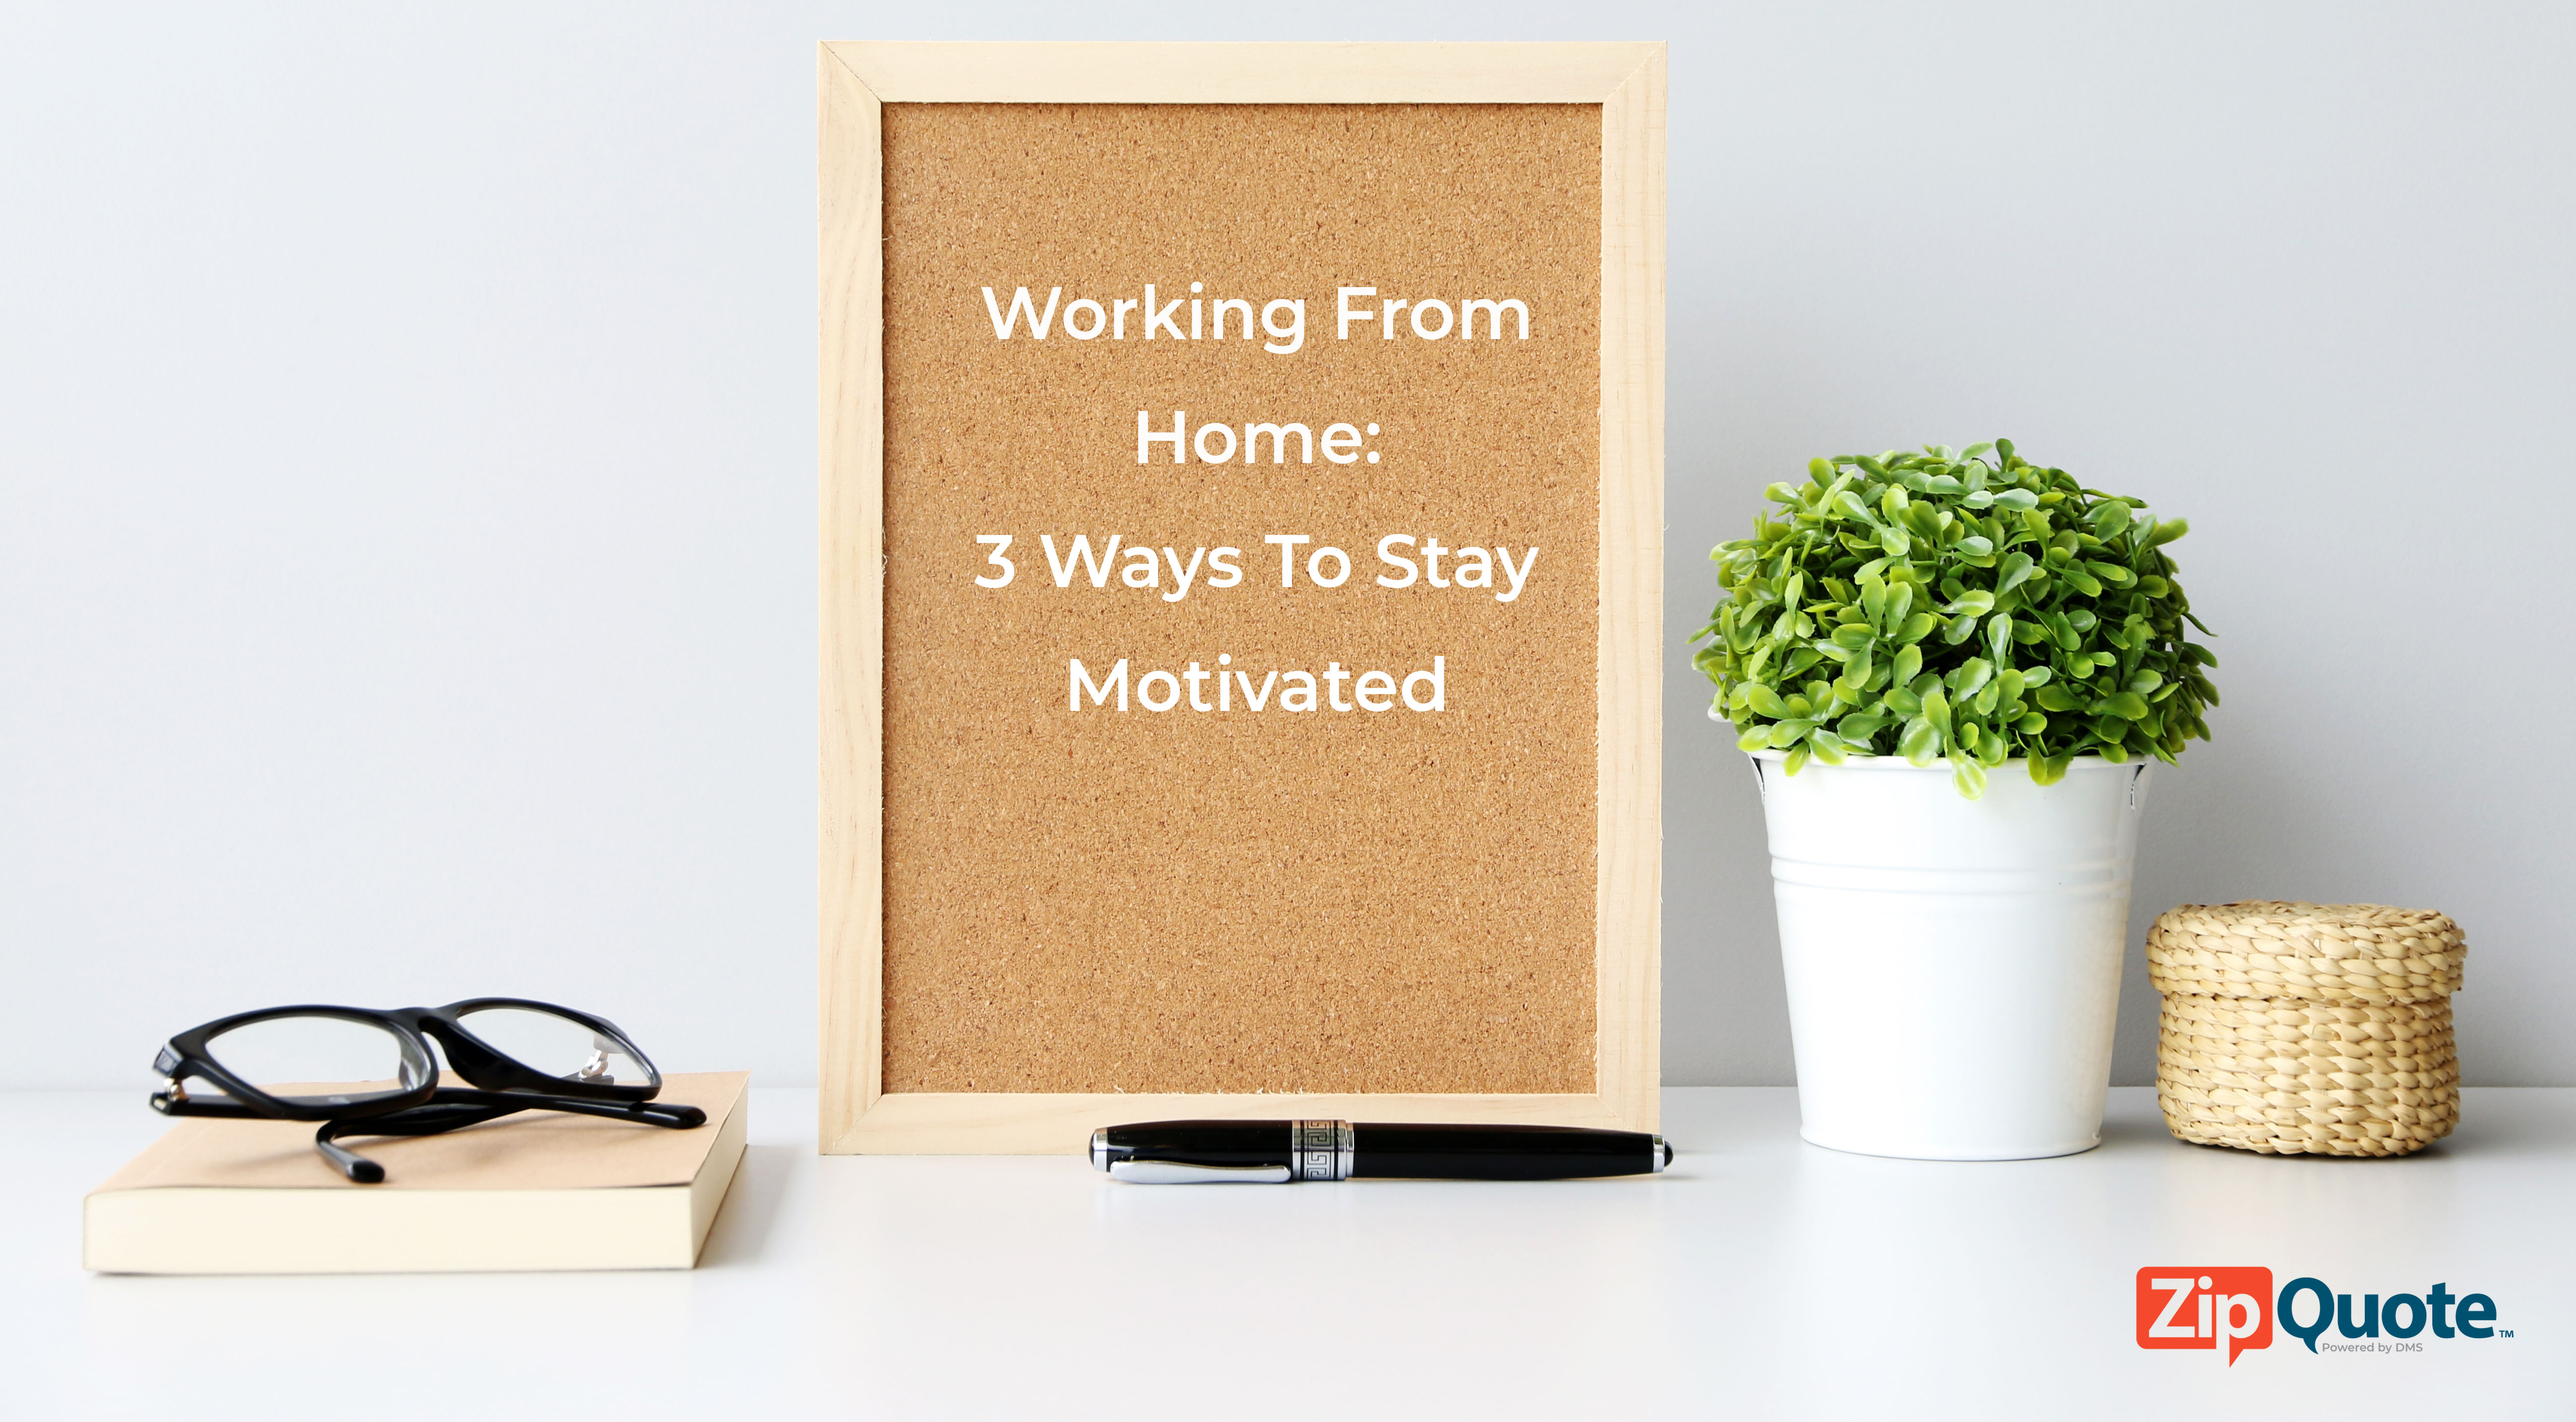 work from home: 3 ways to stay motivated on desk